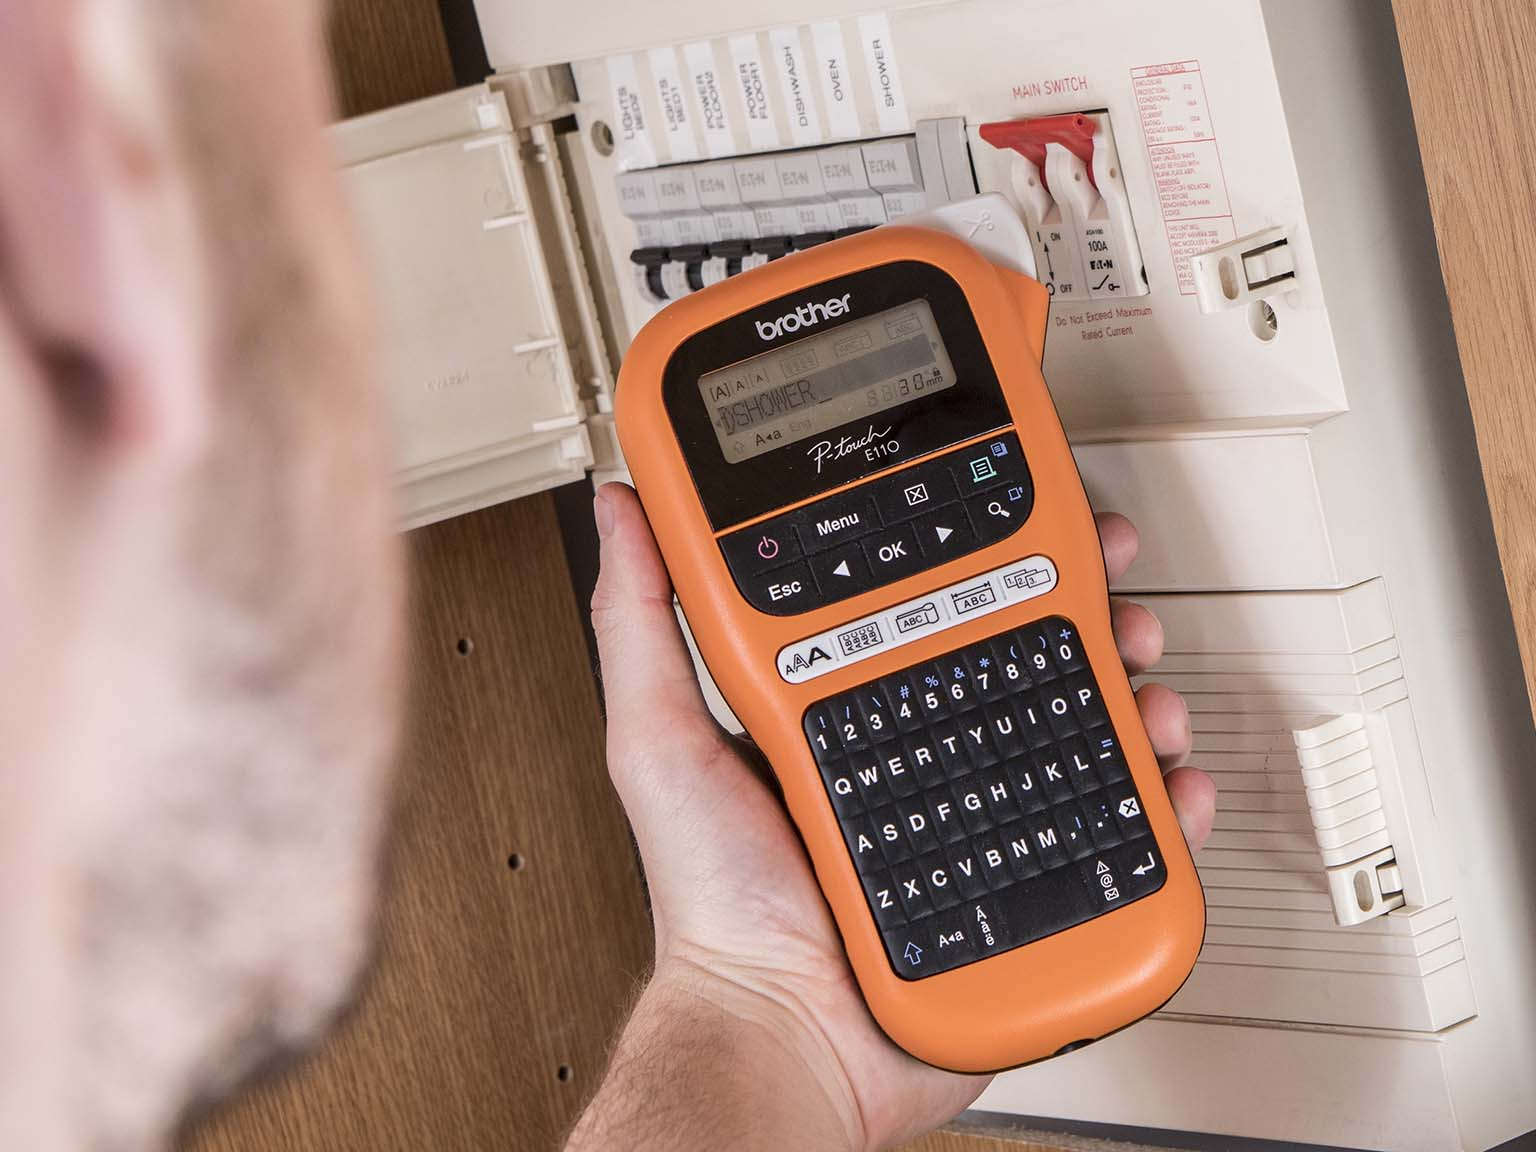 Brother P-touch E110 label printer